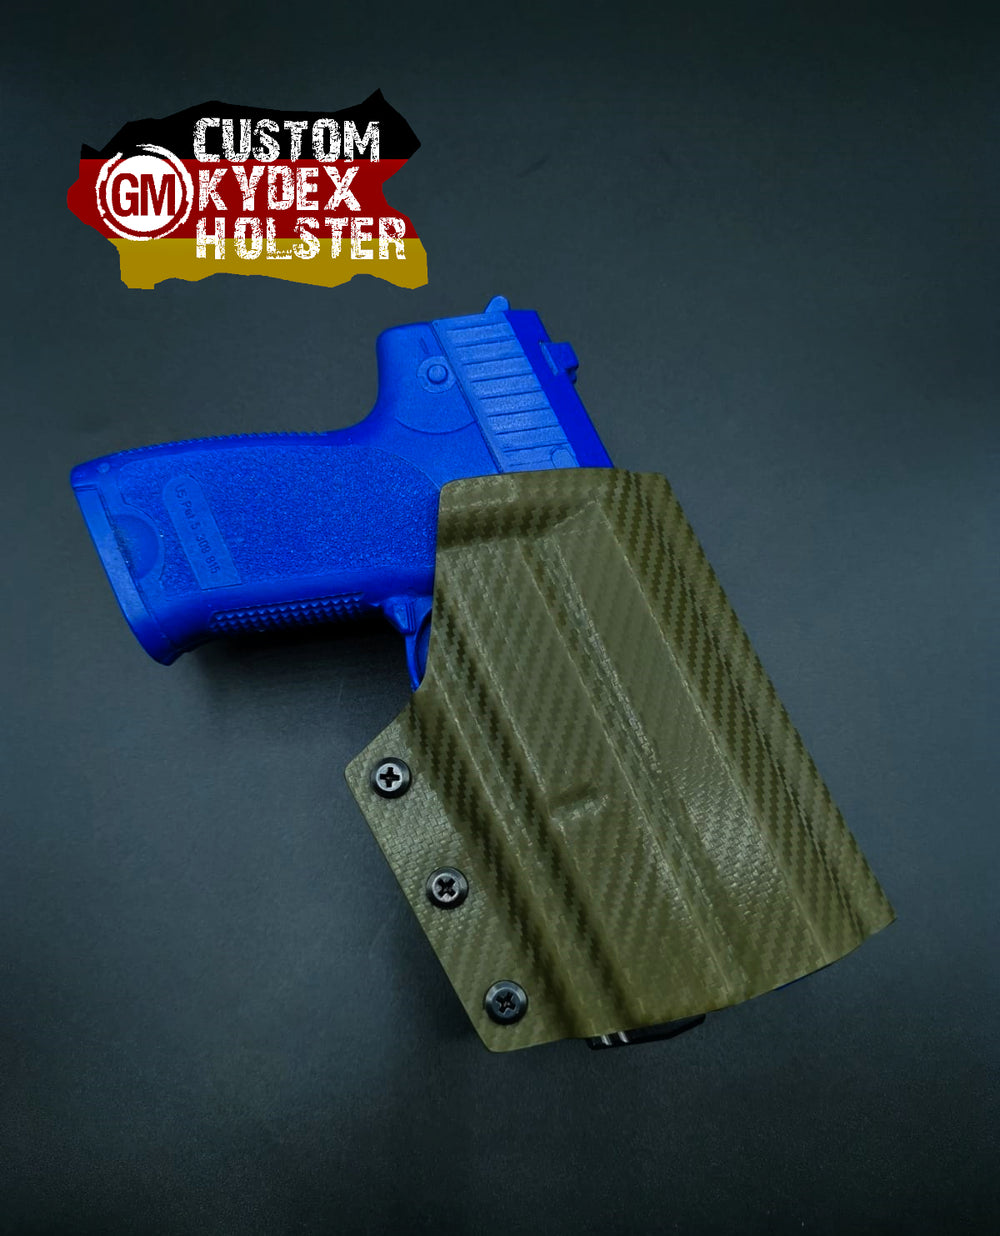 GM OWB Custom Kydex Holster H&K Multi Mount für P8 / USP